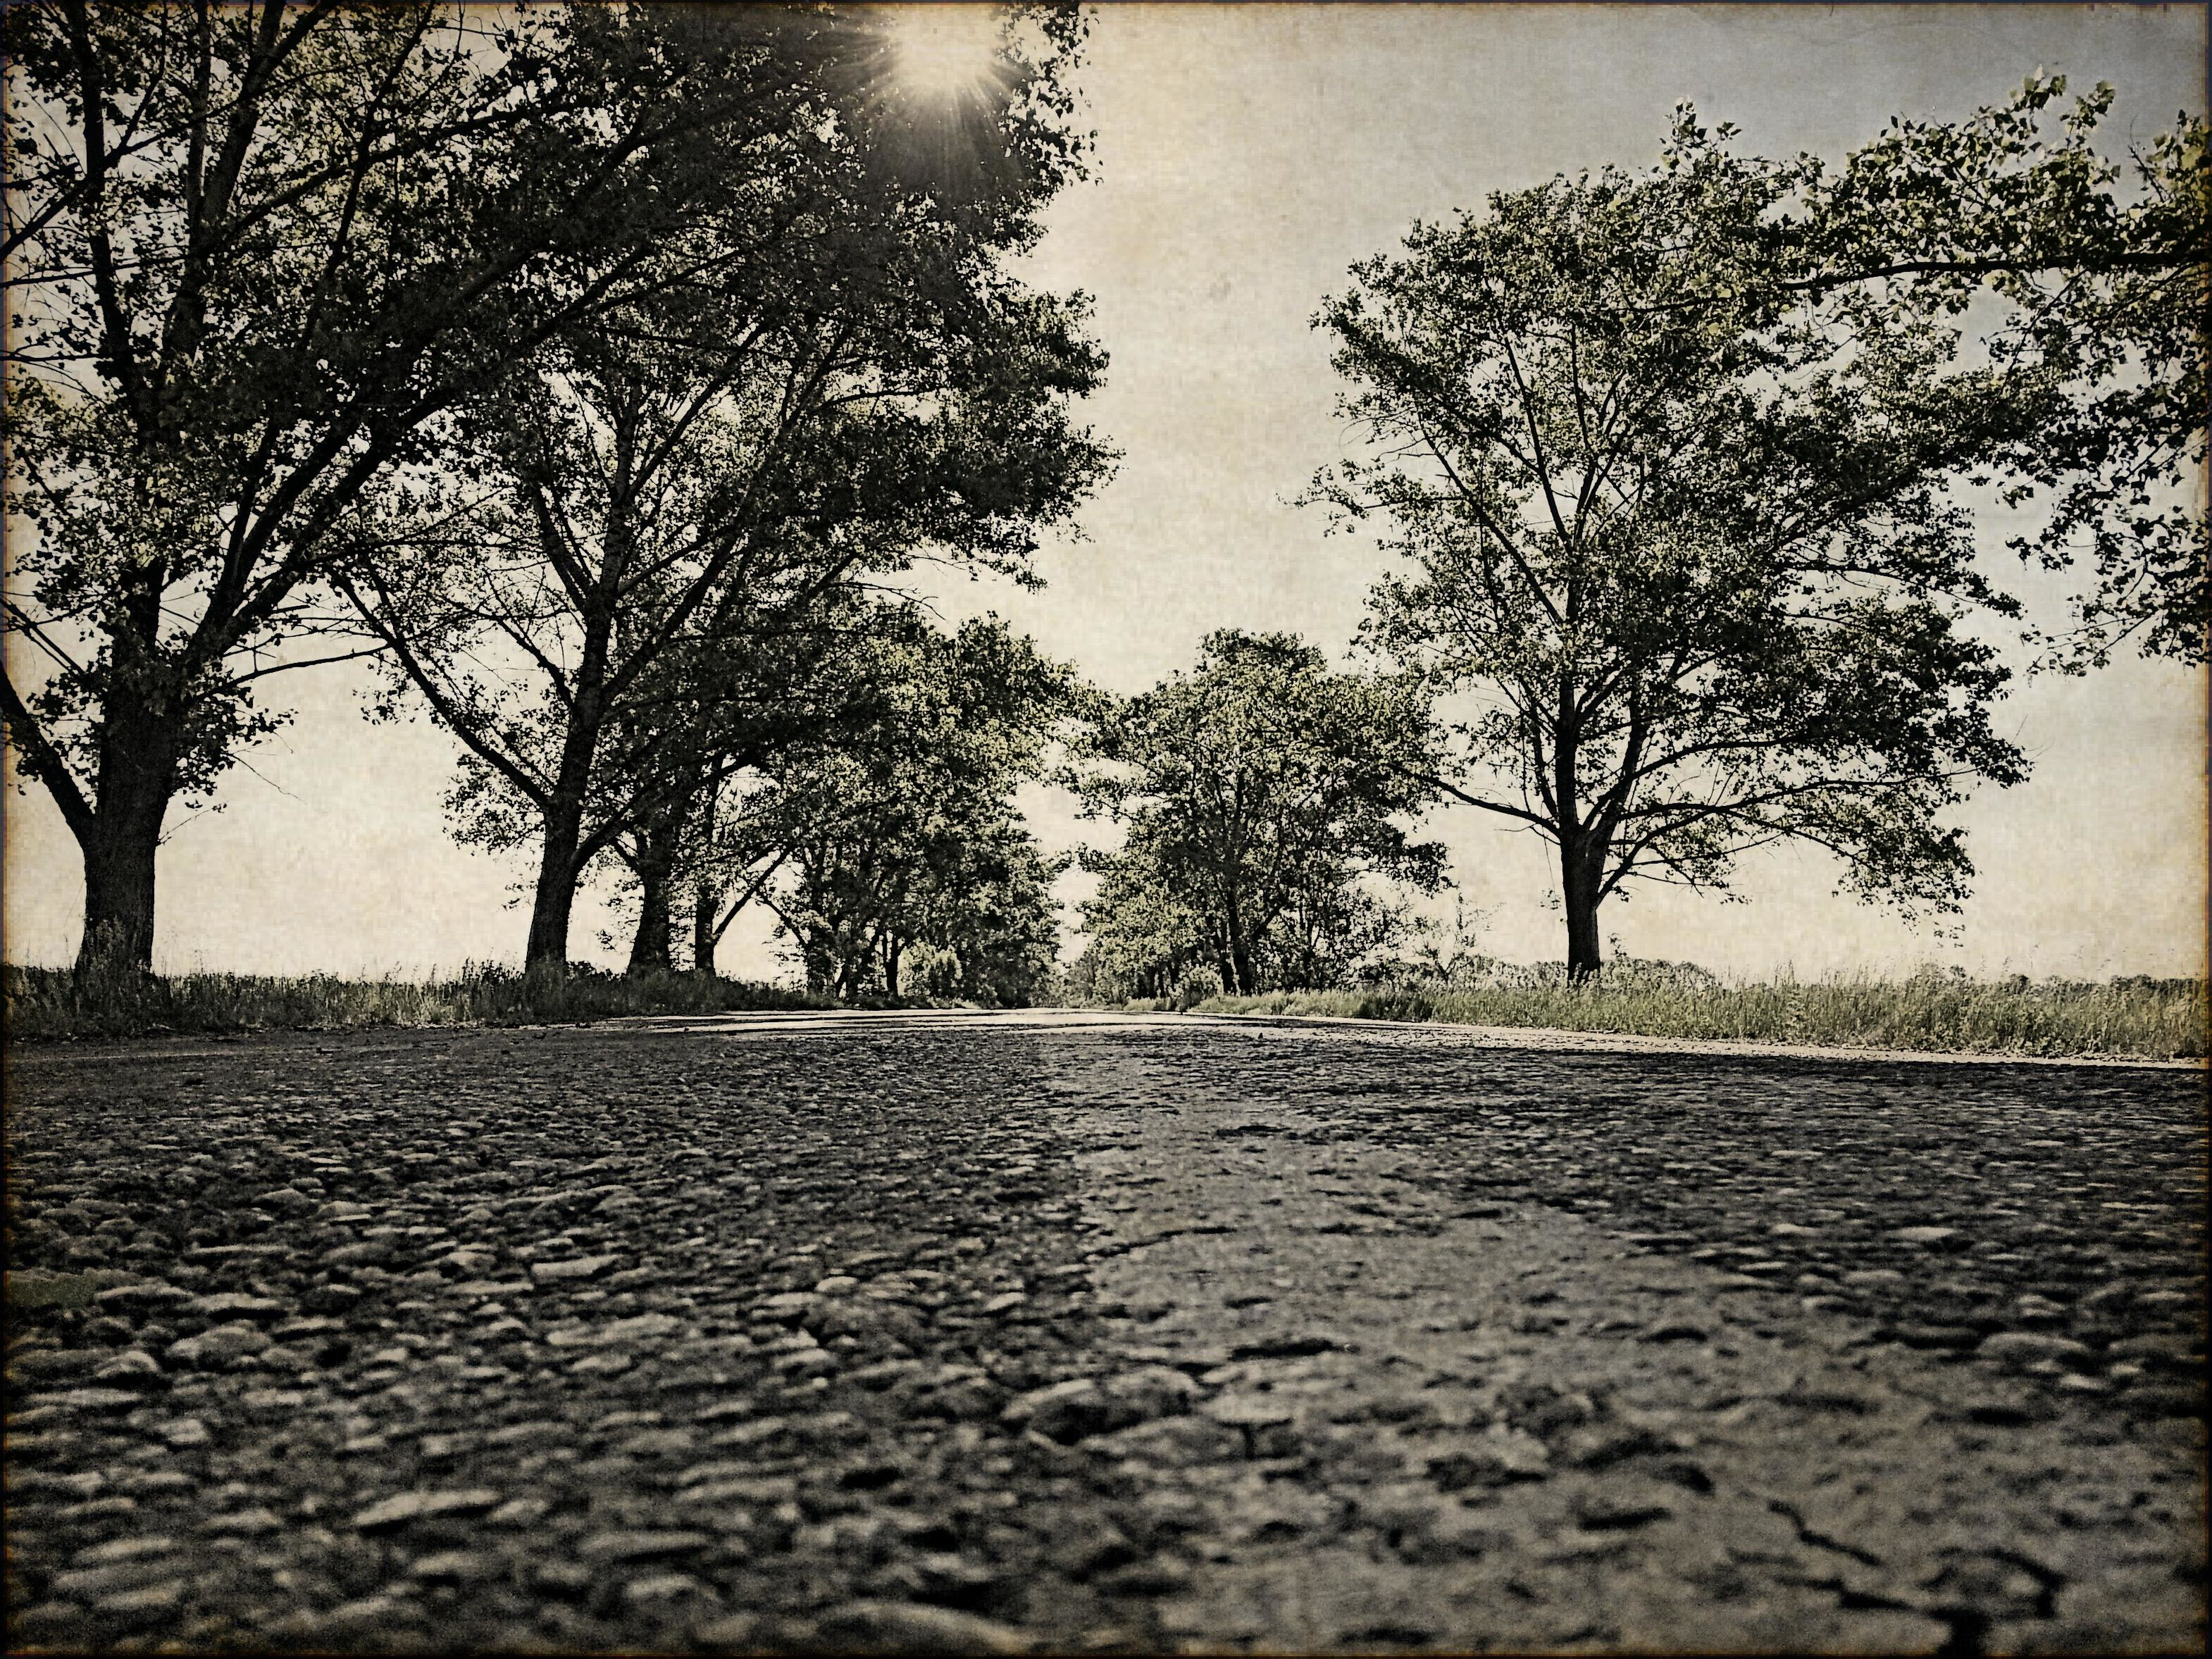 tree, bare tree, tranquility, branch, the way forward, nature, tranquil scene, street, road, footpath, silhouette, sunlight, sky, scenics, outdoors, shadow, no people, beauty in nature, tree trunk, growth